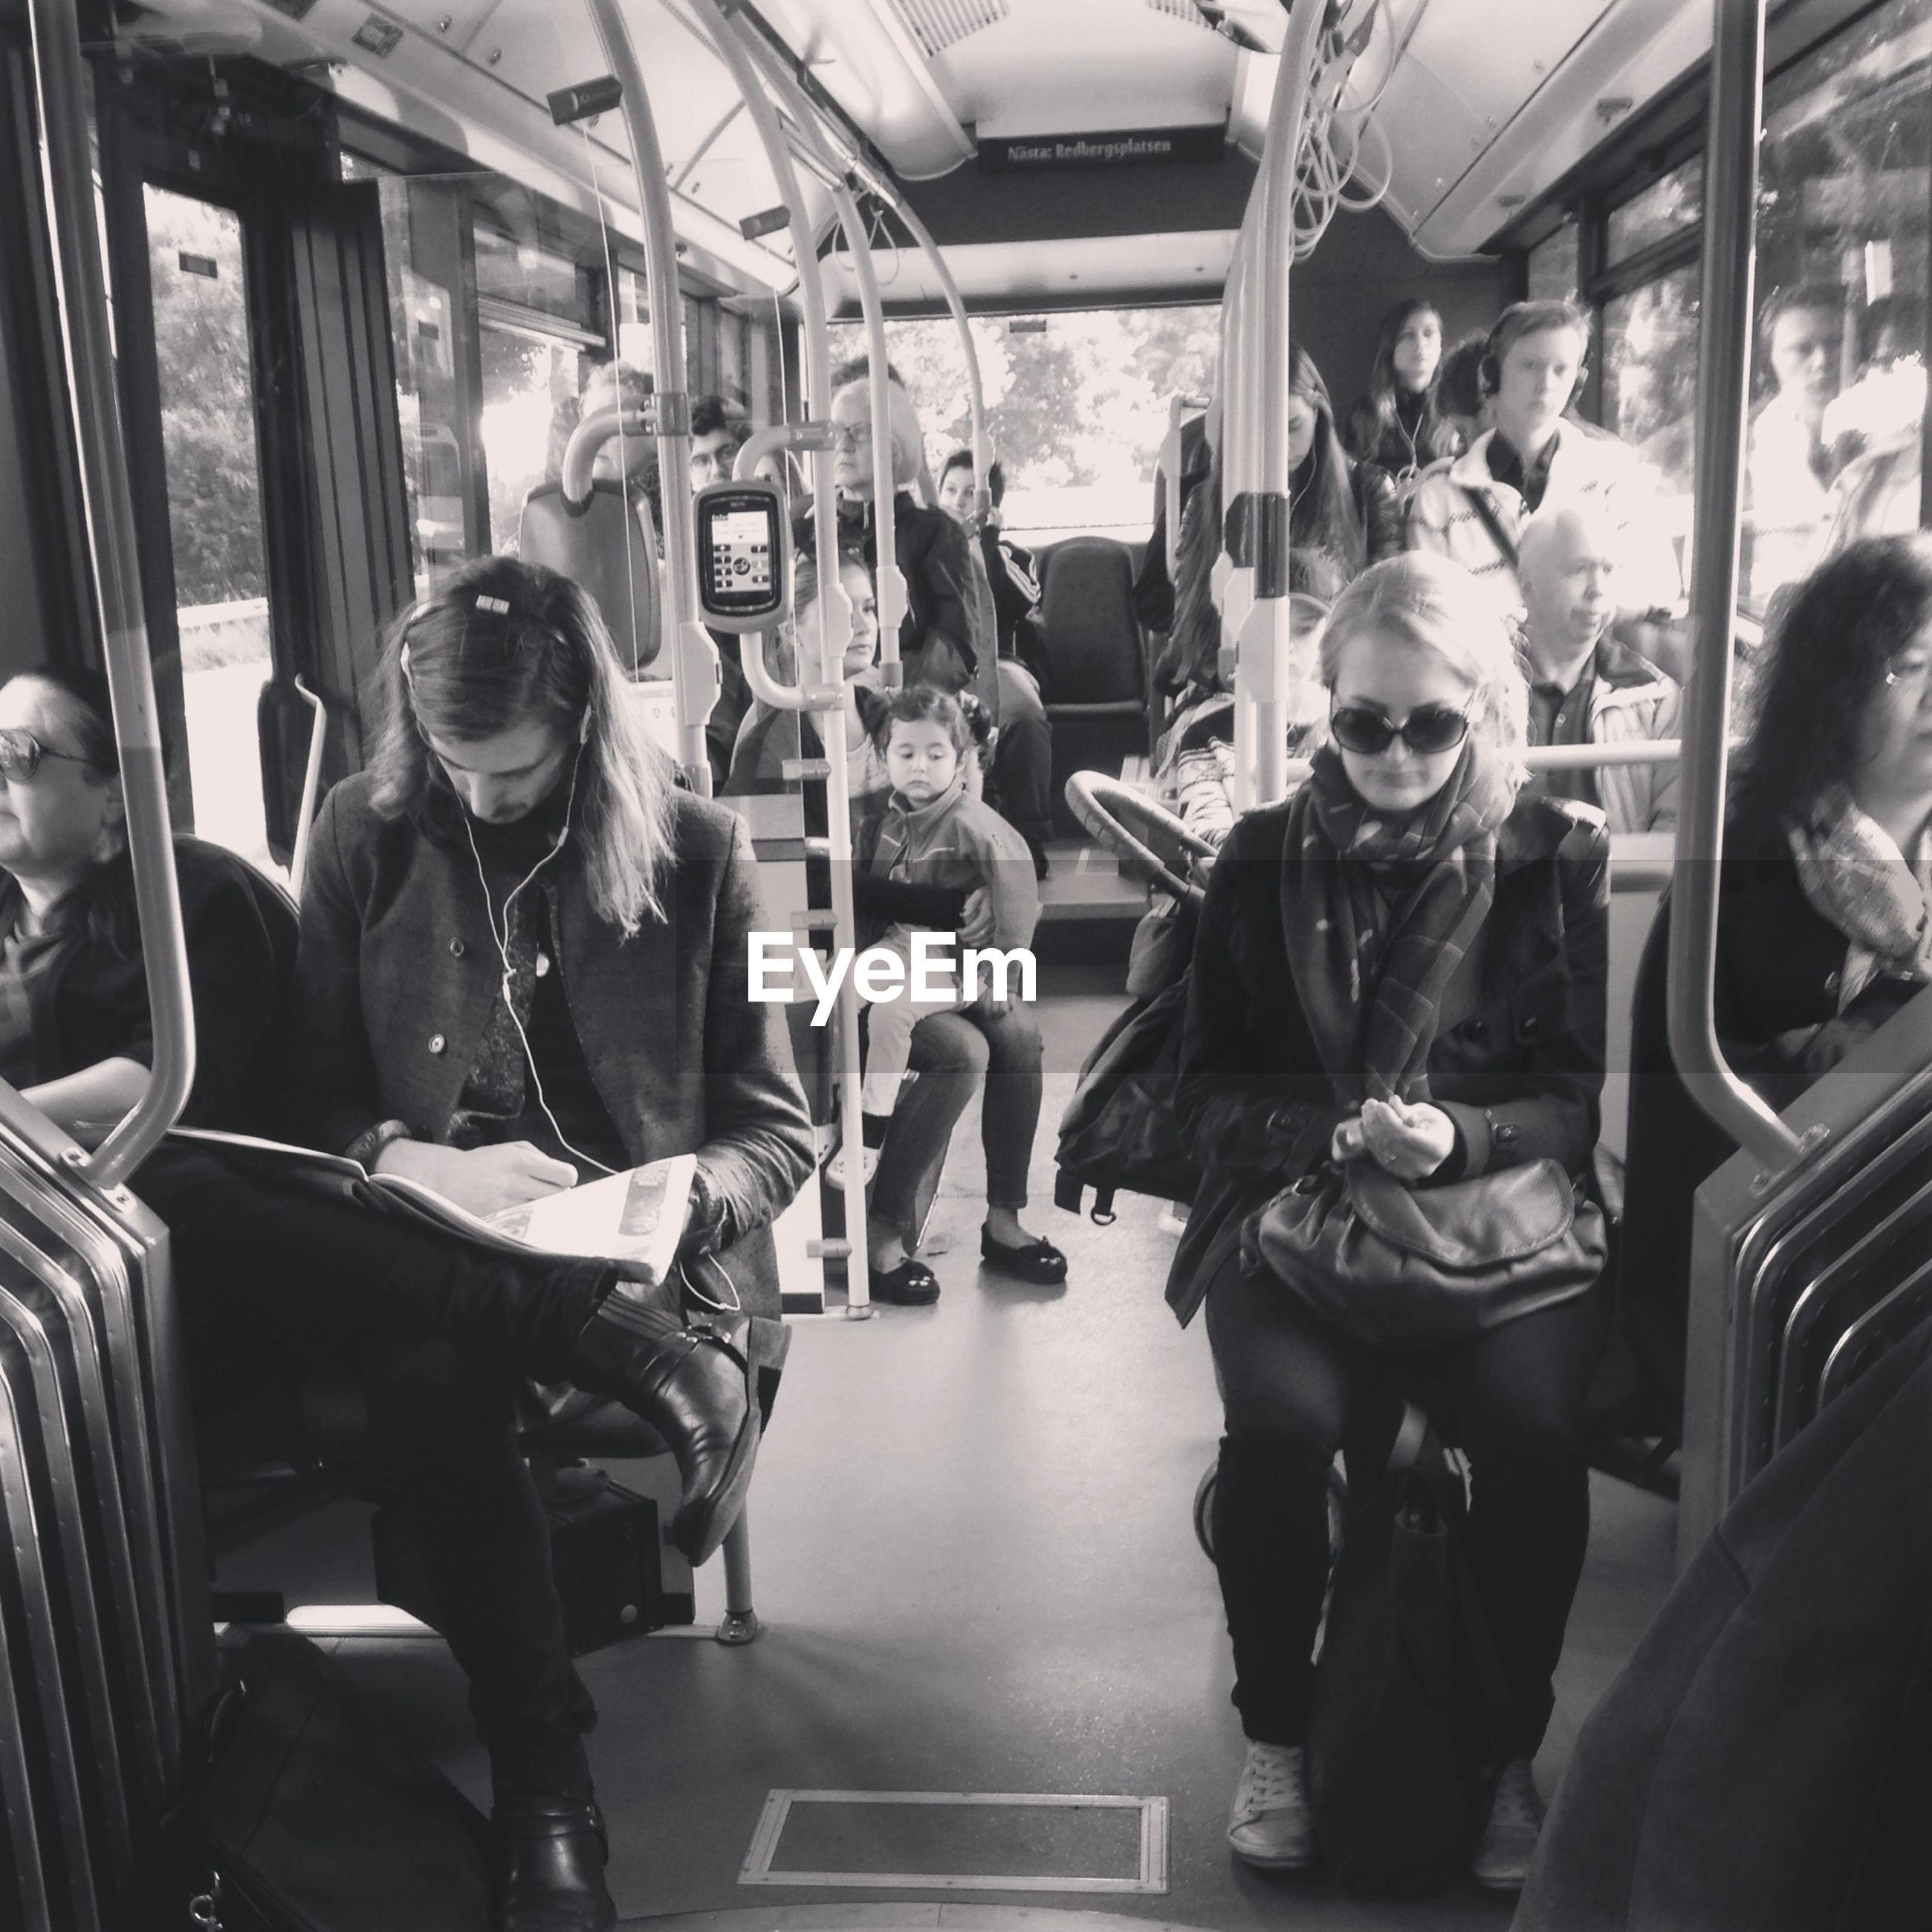 indoors, men, lifestyles, person, large group of people, public transportation, leisure activity, retail, transportation, sitting, shopping, store, casual clothing, passenger, consumerism, incidental people, medium group of people, market, mode of transport